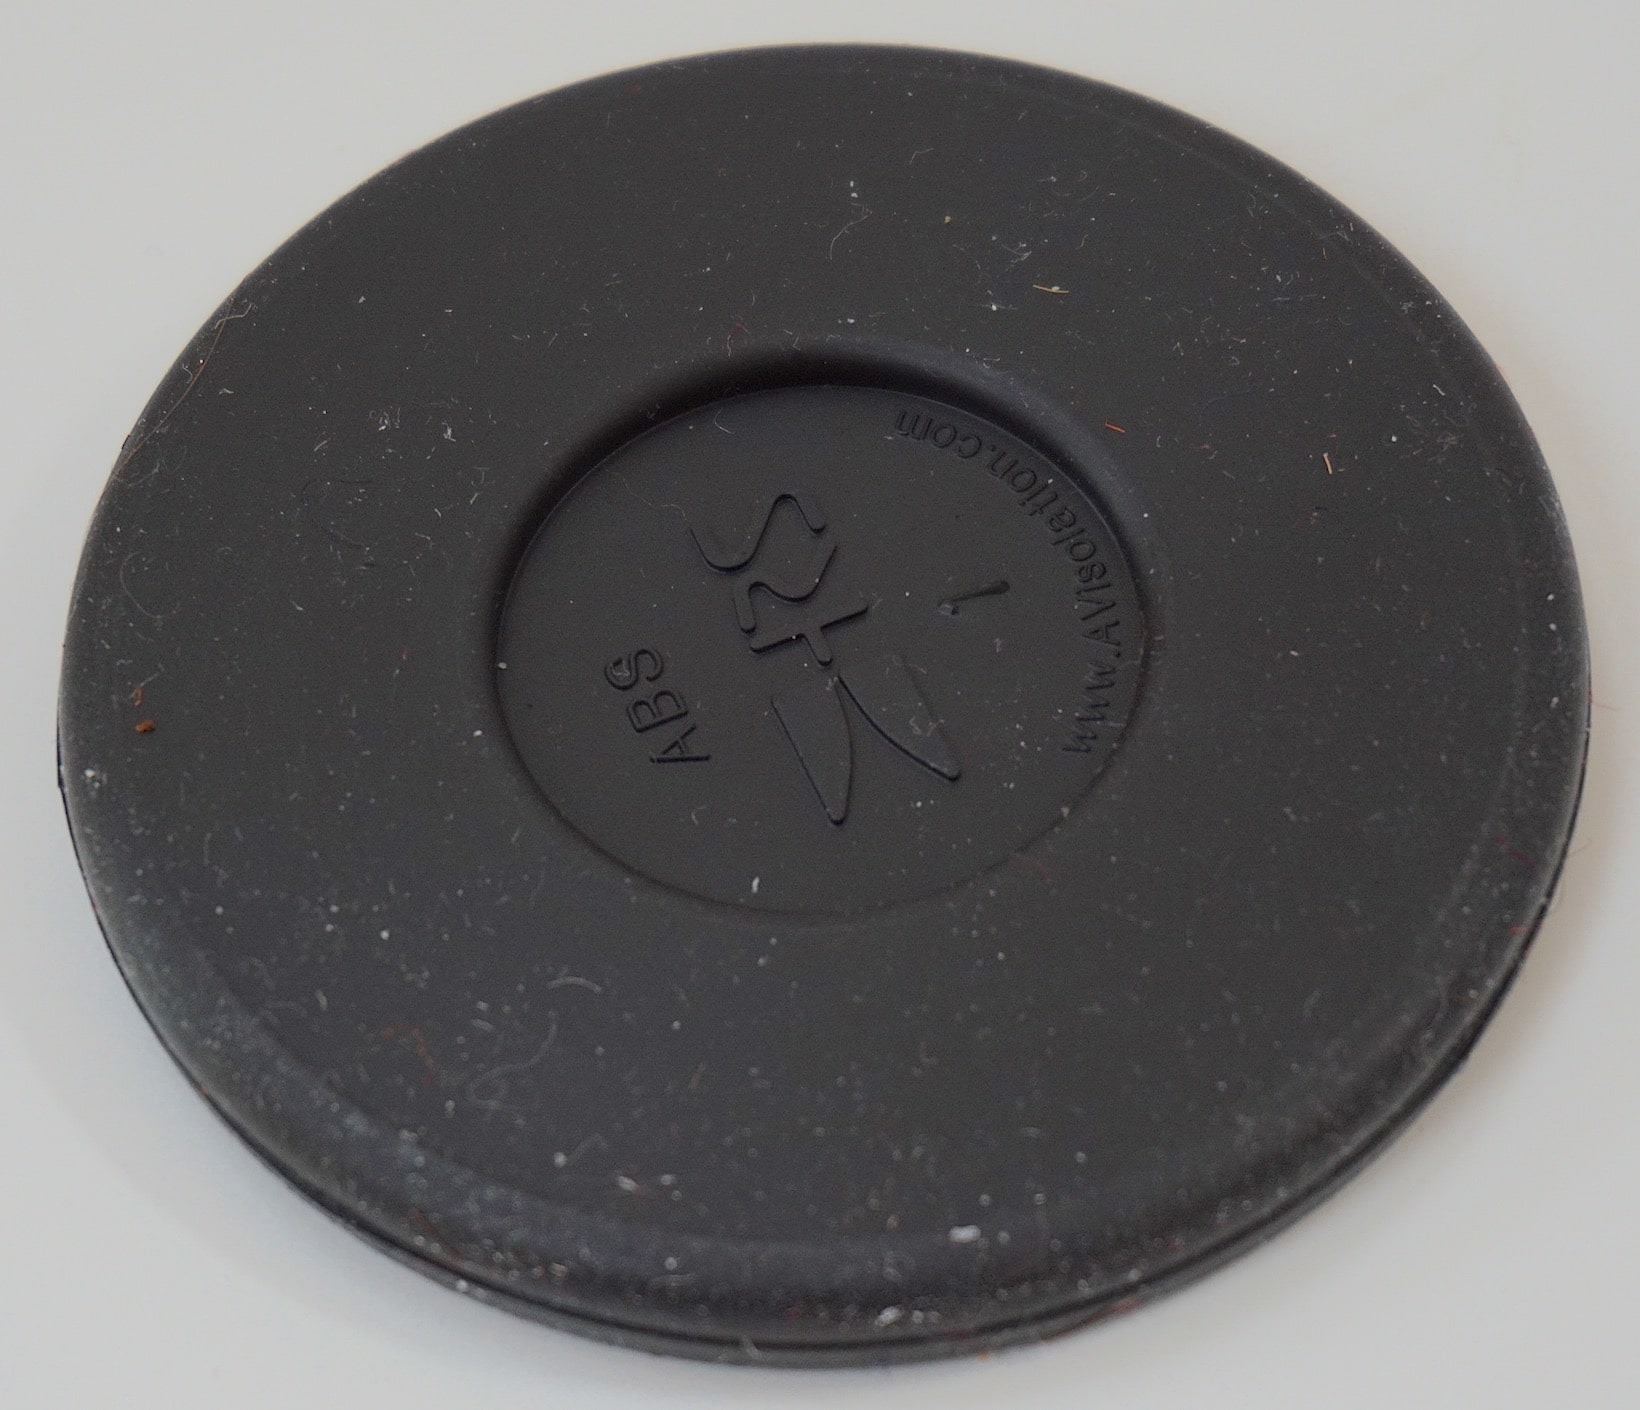 Coupler Discs From HRS For Hi-Fi Cables